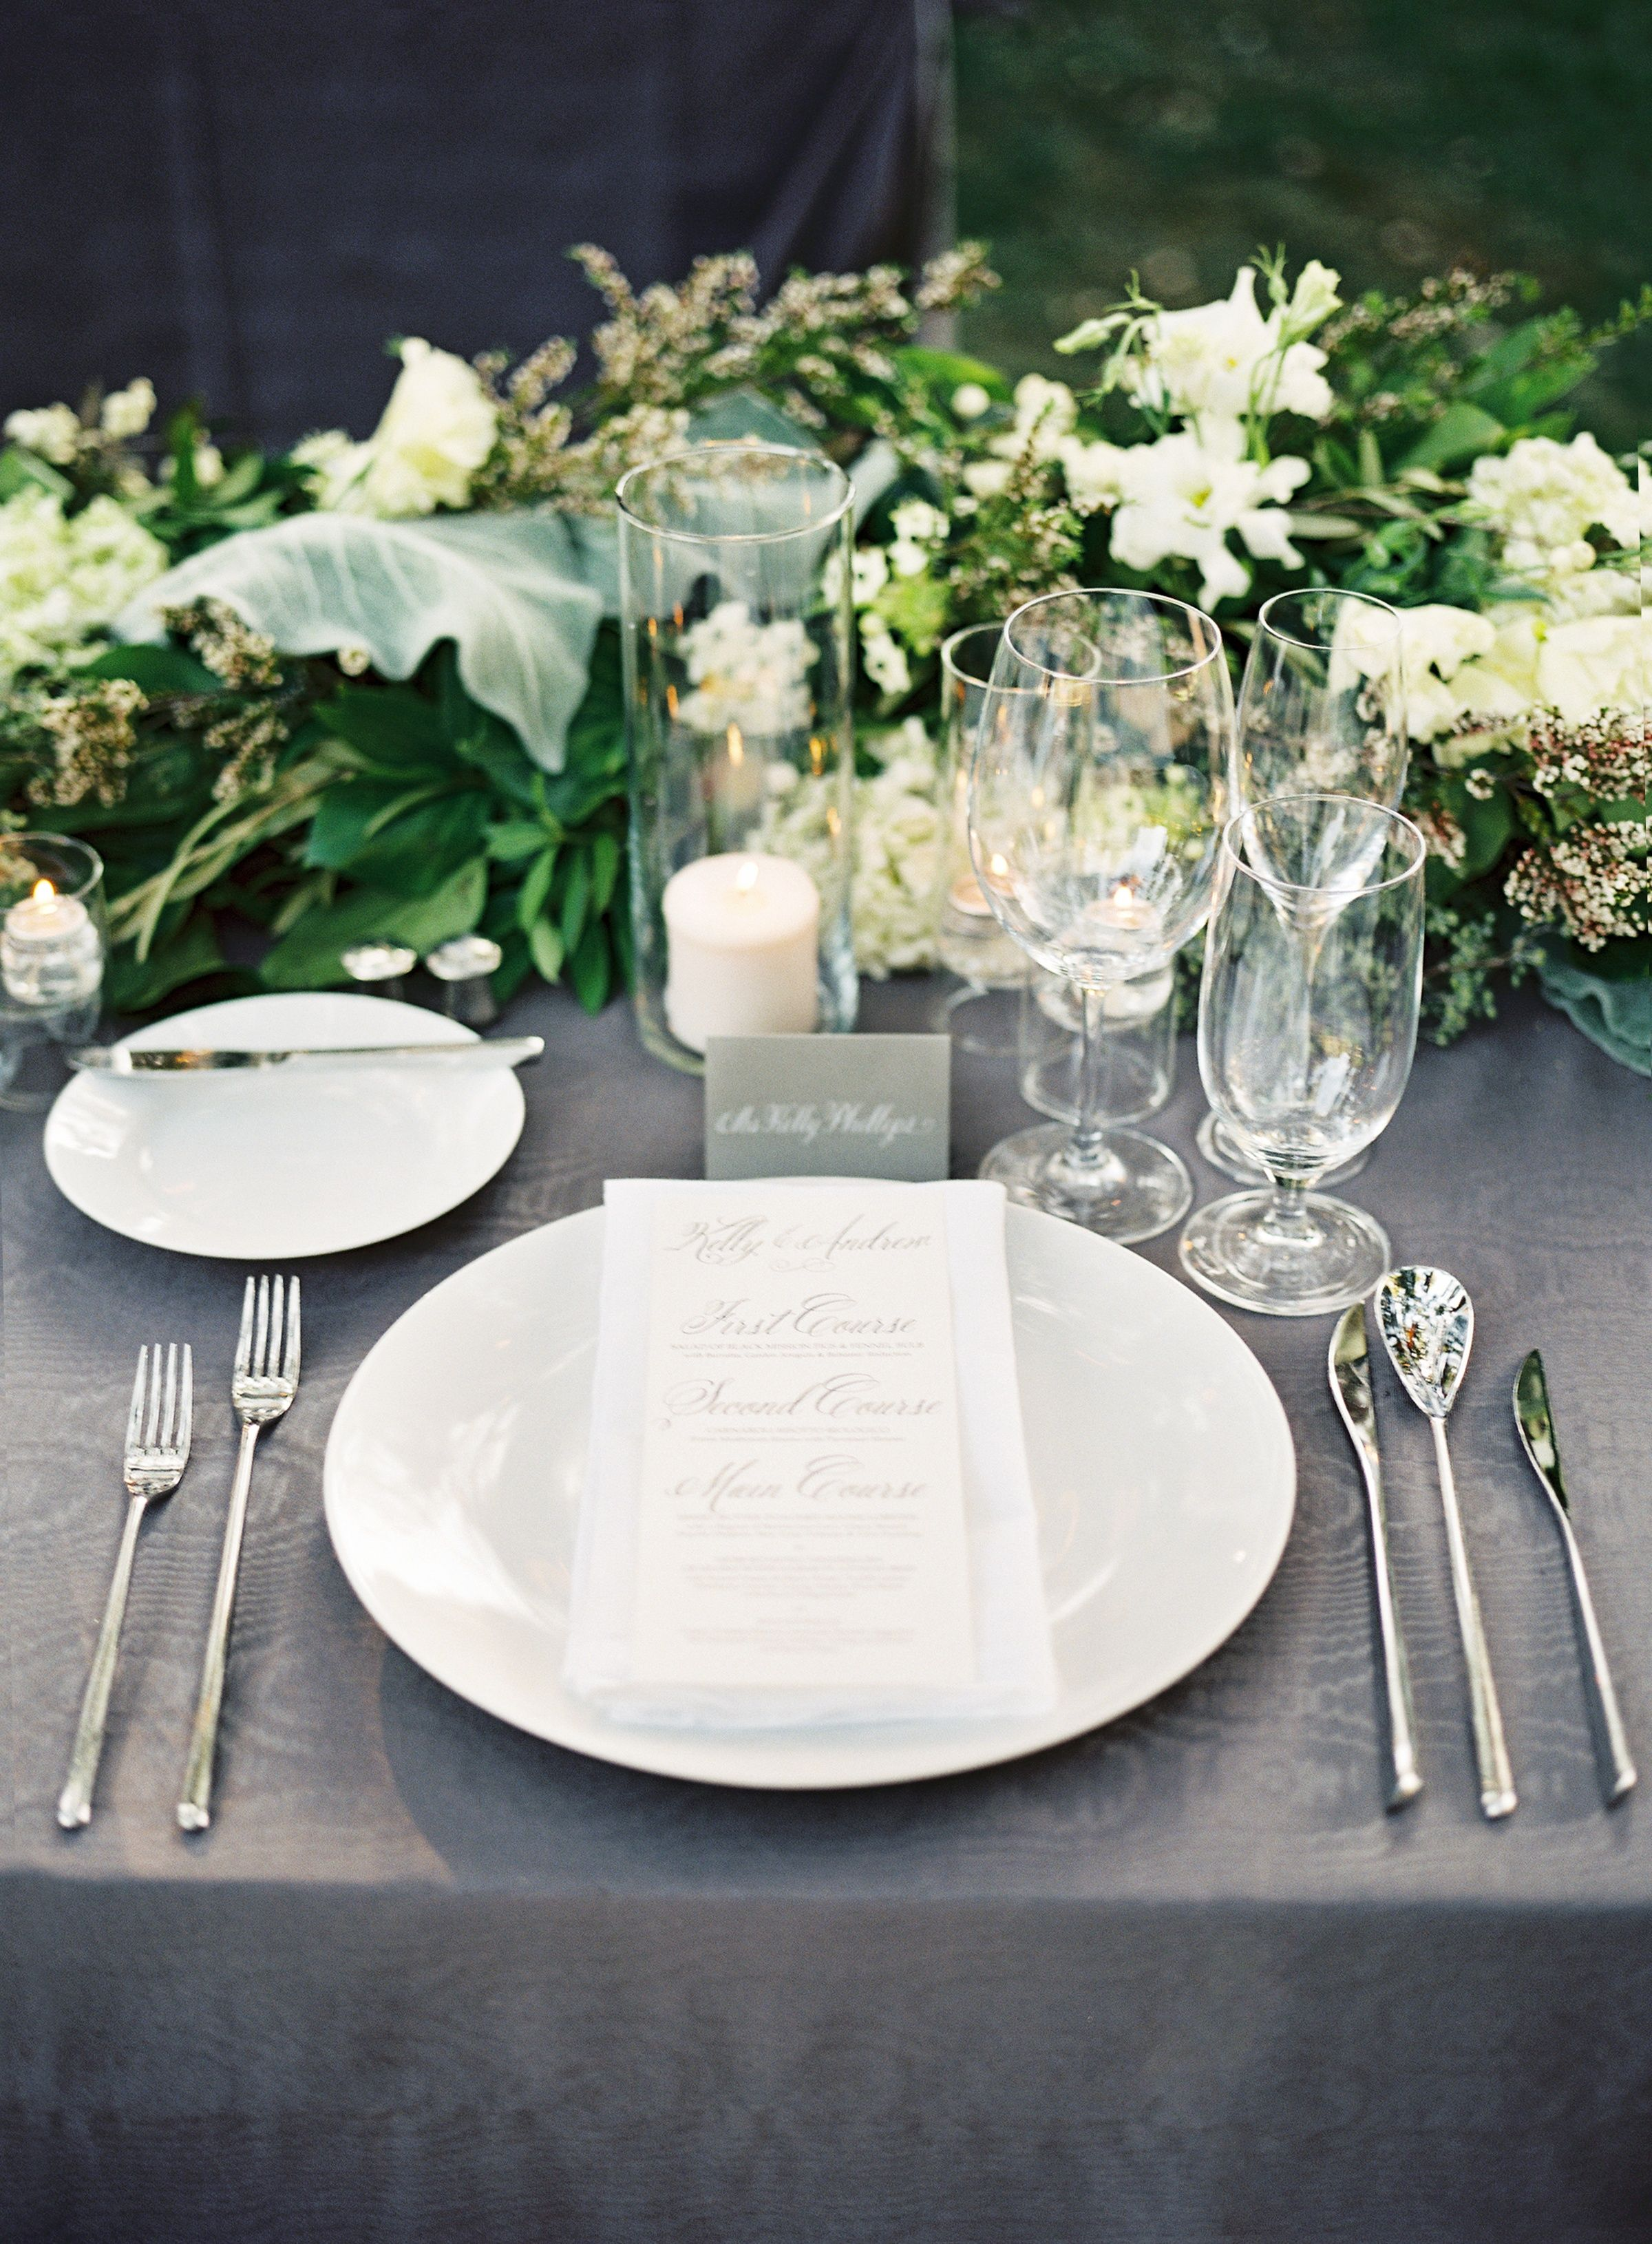 Elegant Gray and White Place Settings | Steve Steinhardt Photography ...